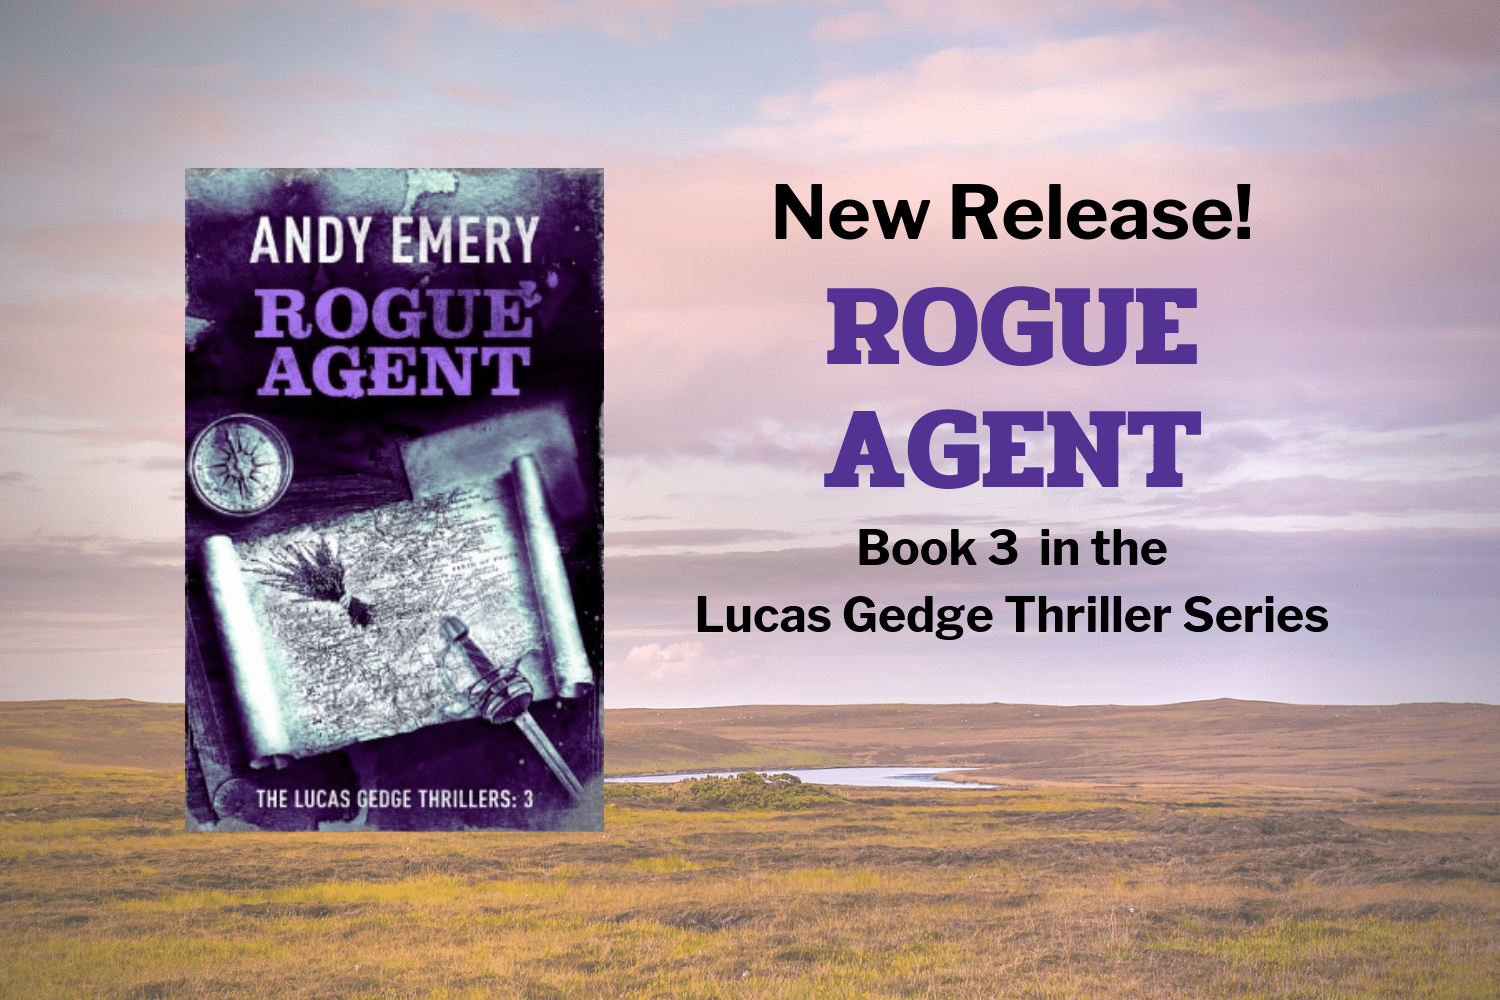 Rogue Agent New Release 3x2-min.png